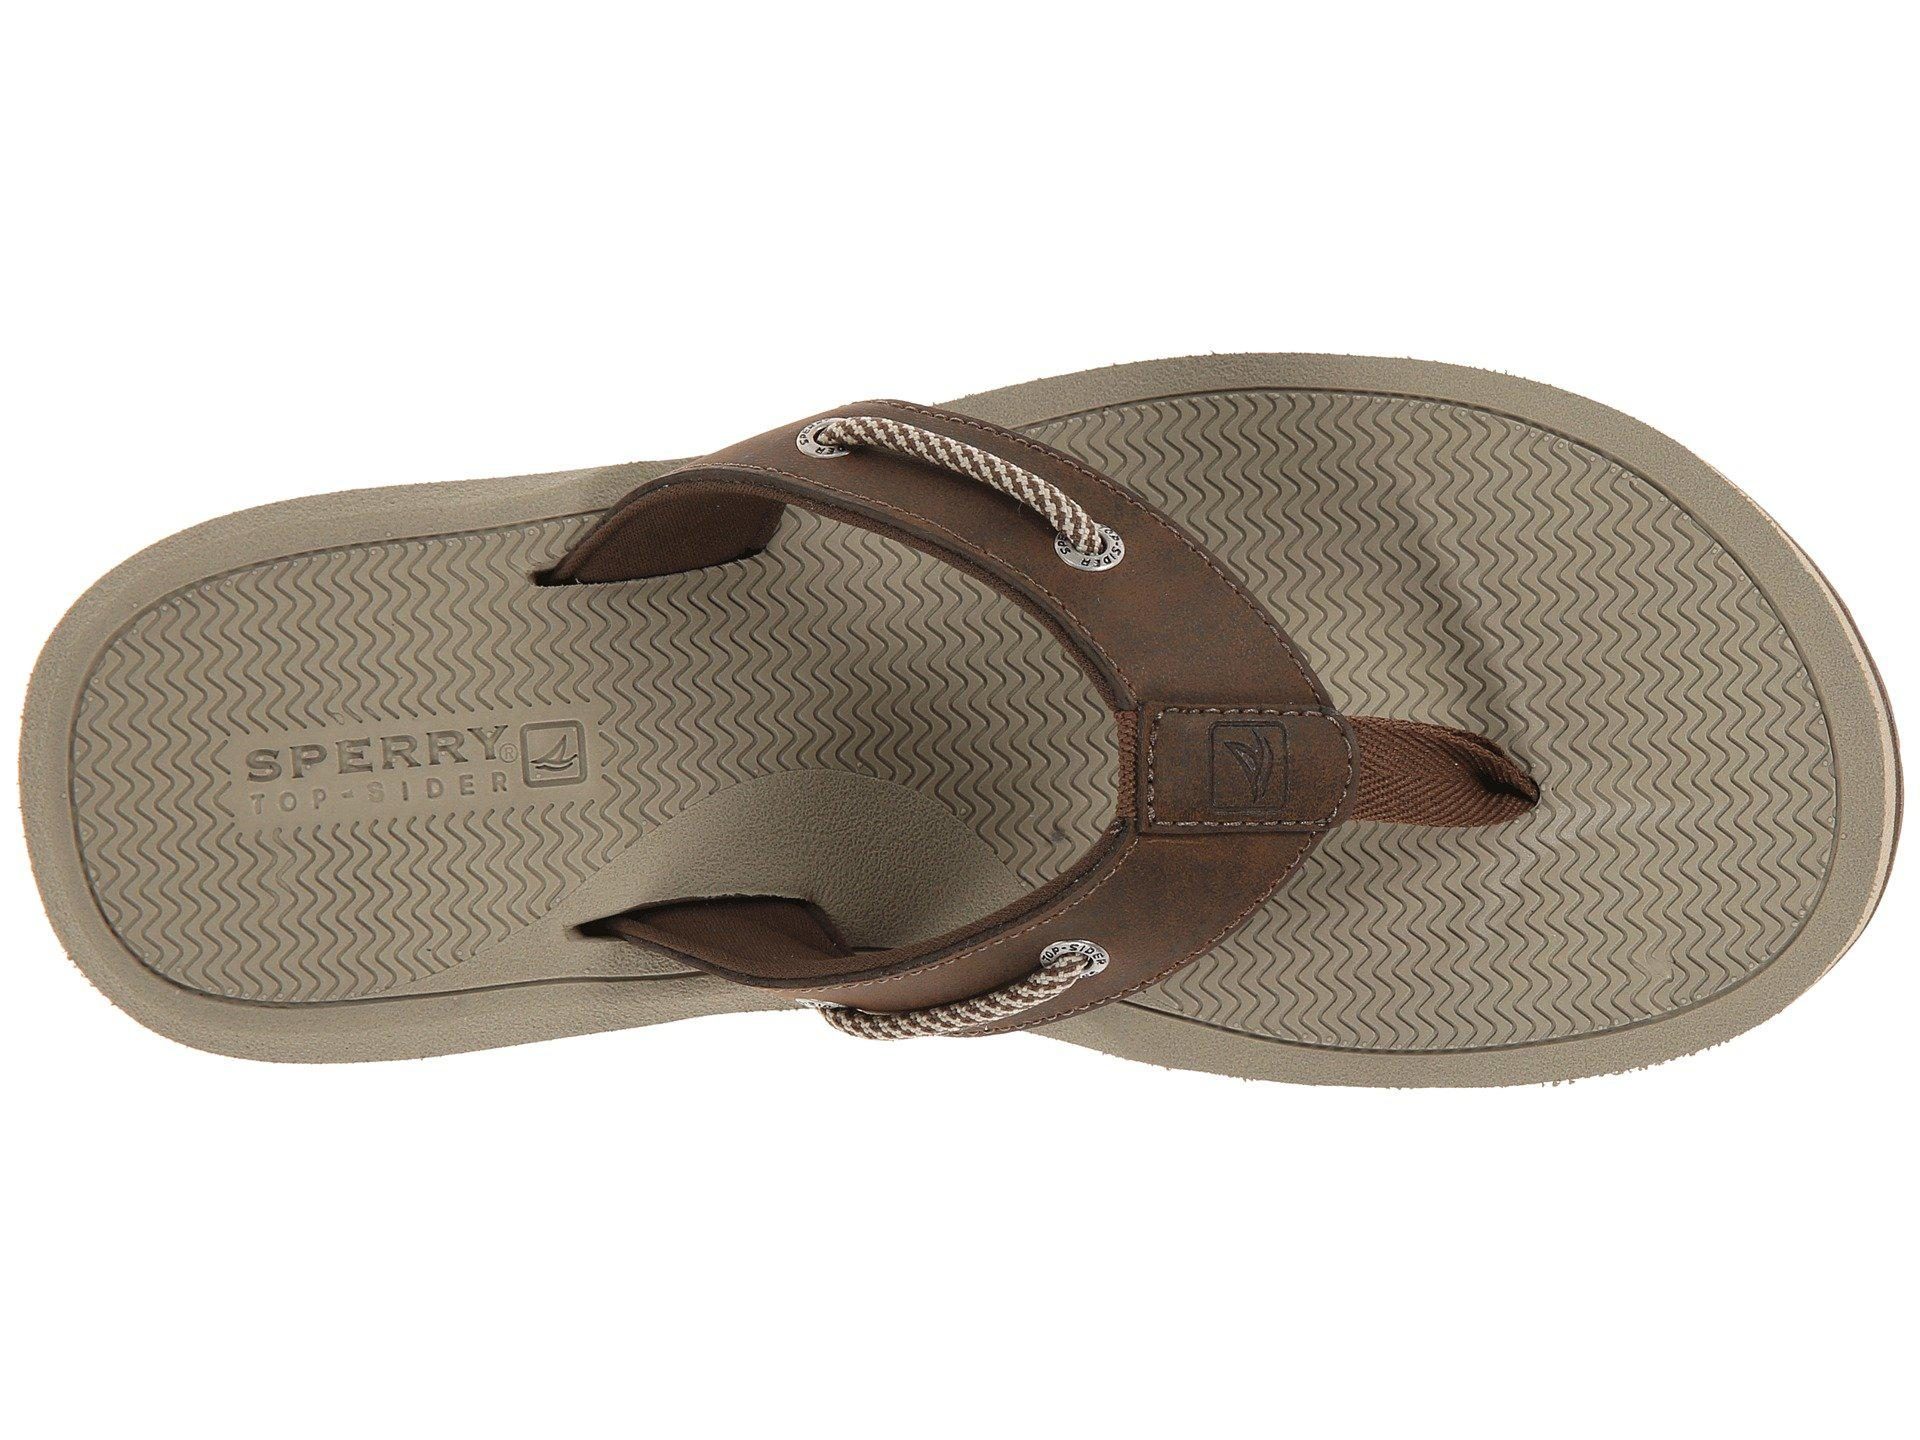 4905ef9f72b2b8 Lyst - Sperry Top-Sider Pensacola Thong in Brown for Men